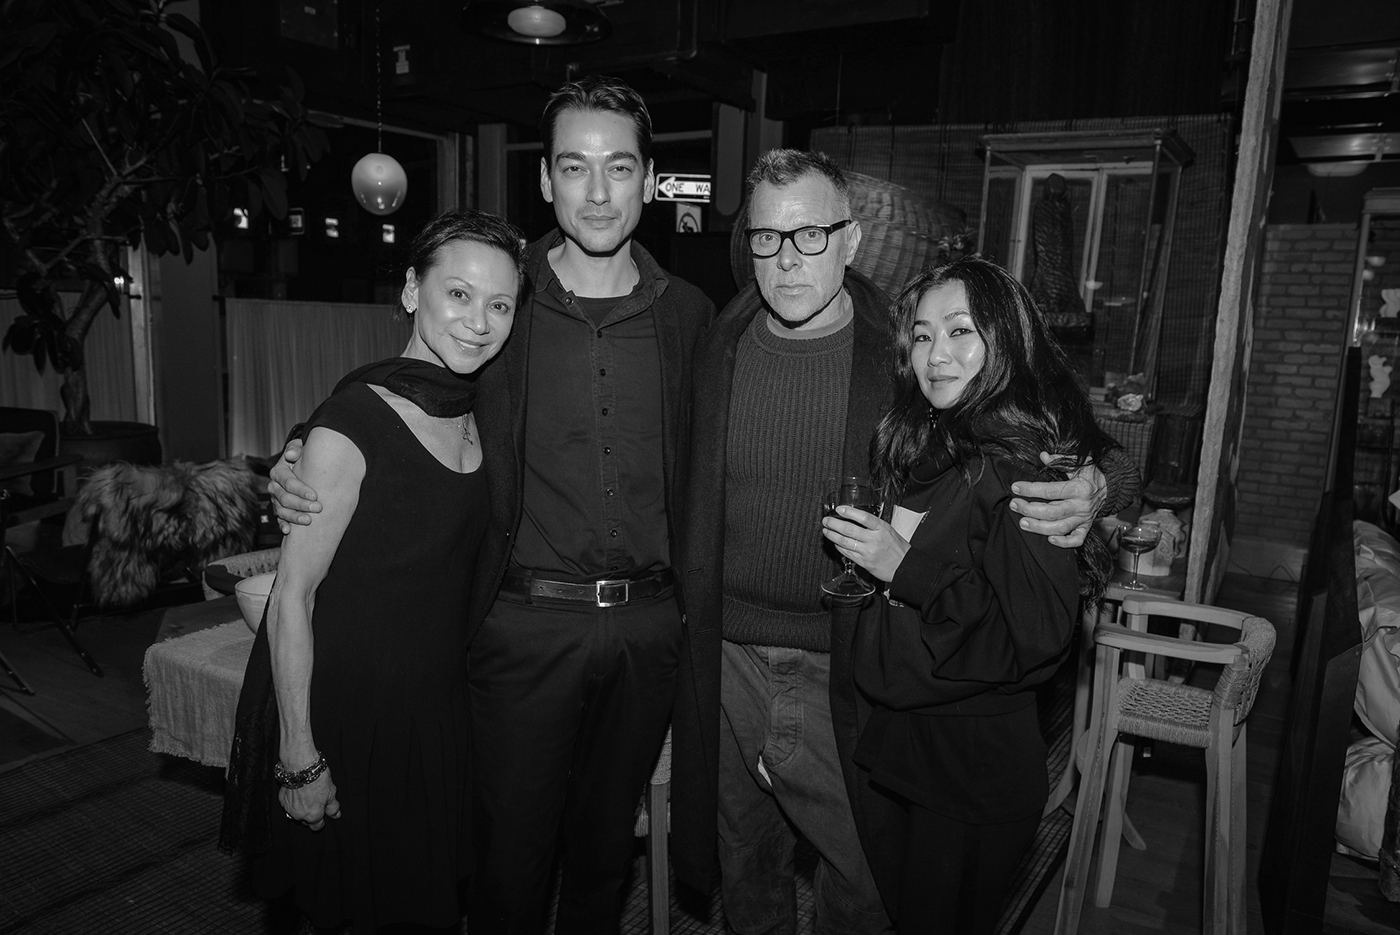 Jeannette Chang, Tenzin Wild, George Cortina, and Jae Choi